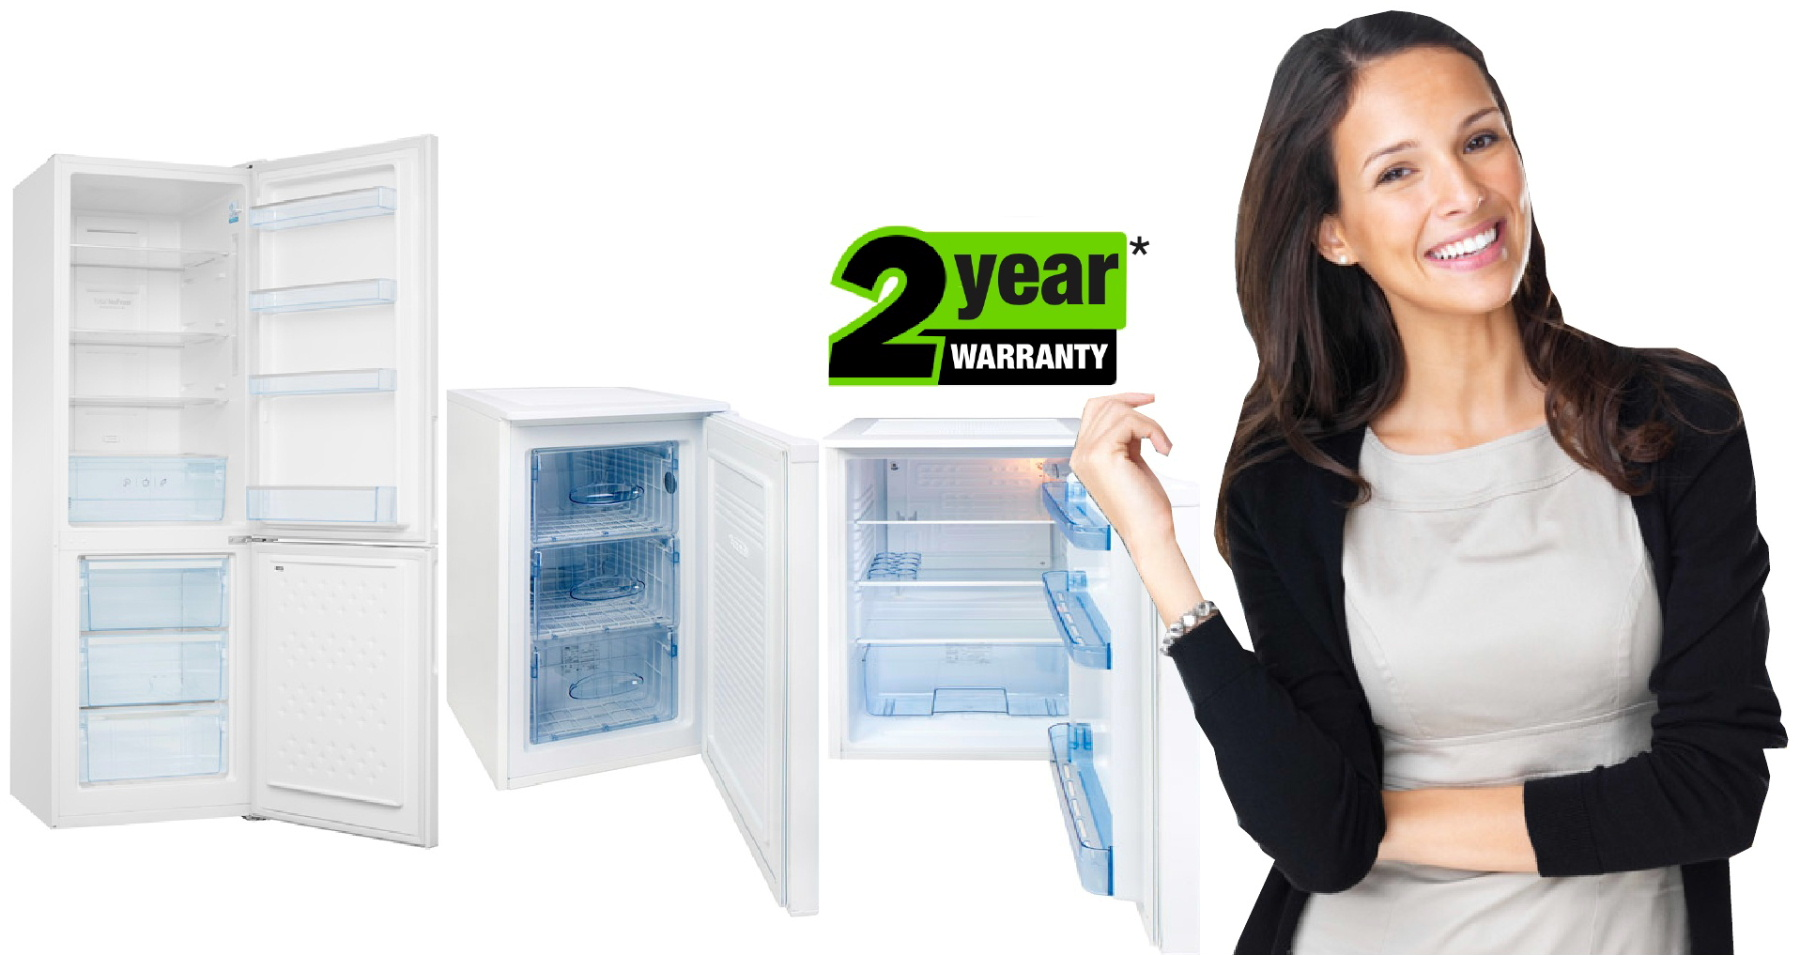 cheap fridges, cheap freezers from Dalbeattie Appliance Centre with a two year warranty on Amica and Wellco products.